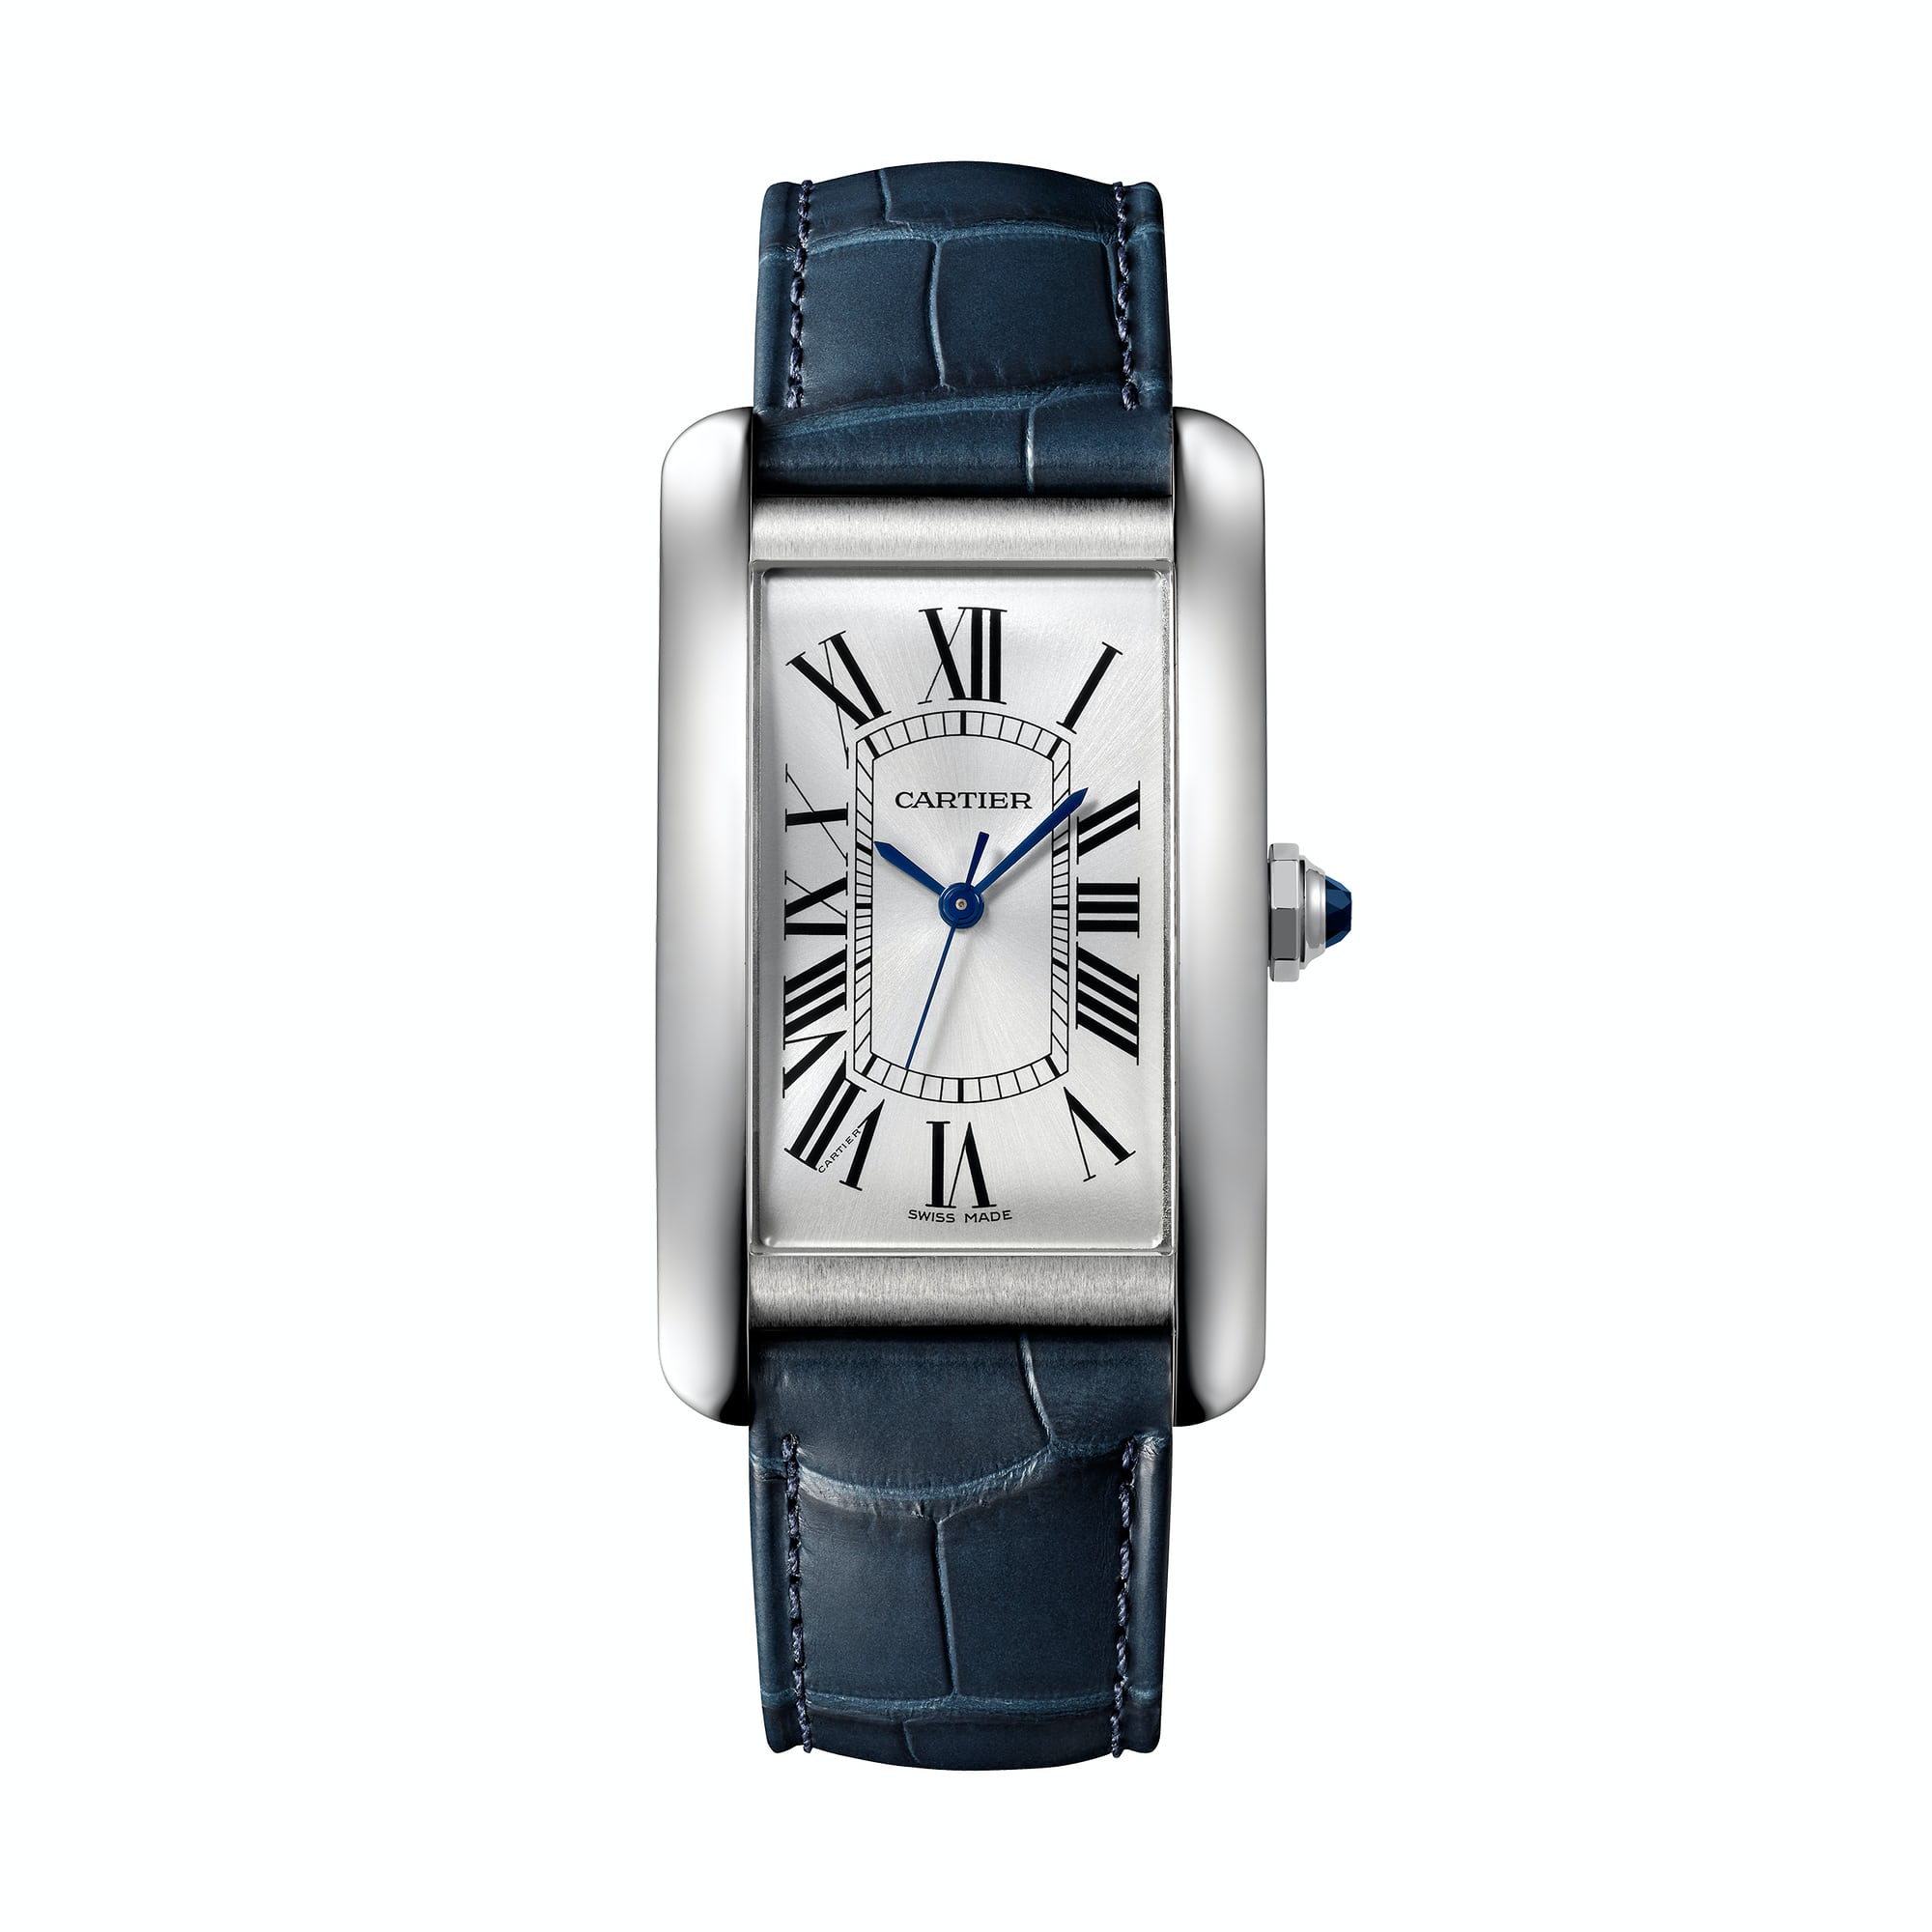 tank americaine large Introducing: The Cartier Tank Americaine In Stainless Steel Introducing: The Cartier Tank Americaine In Stainless Steel TA Large